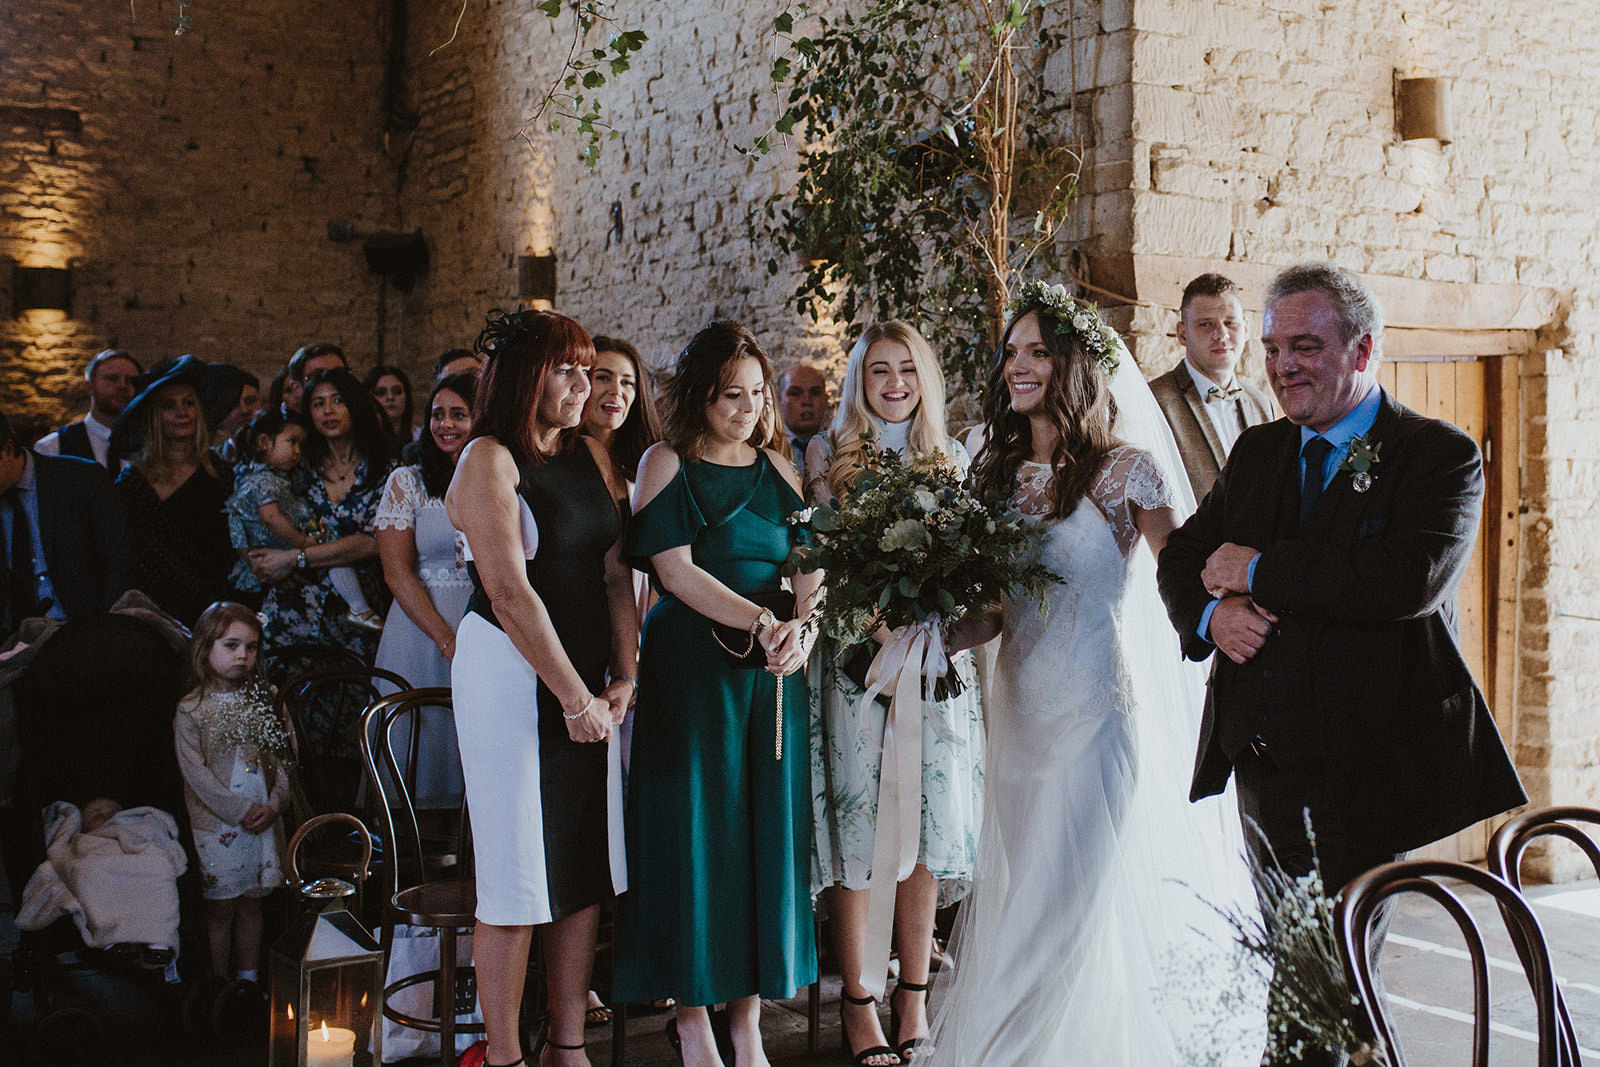 Greenery Wedding At Cripps Barn In The Cotswolds With